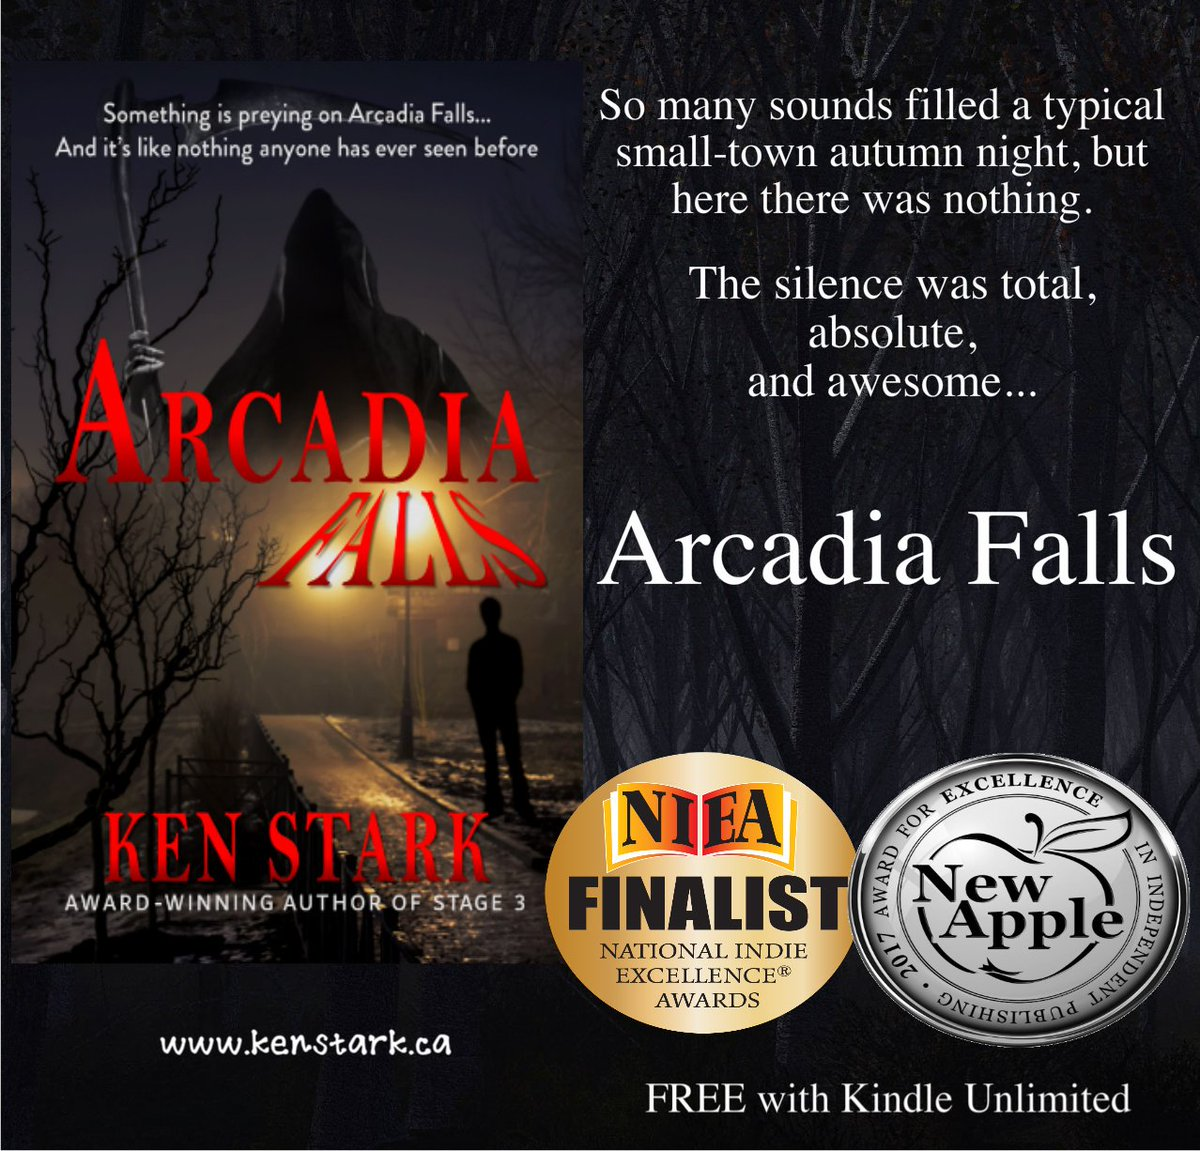 Something is desperately wrong in Arcadia Falls...   http:// amazon.com/dp/B077VVQVL4  &nbsp;    #horror #mystery #paranormal #monster #YA #thriller #IARTG   @NewAppleAwards  Read #ArcadiaFalls for #FREE on #KindleUnlimited<br>http://pic.twitter.com/19q7Ji33wX